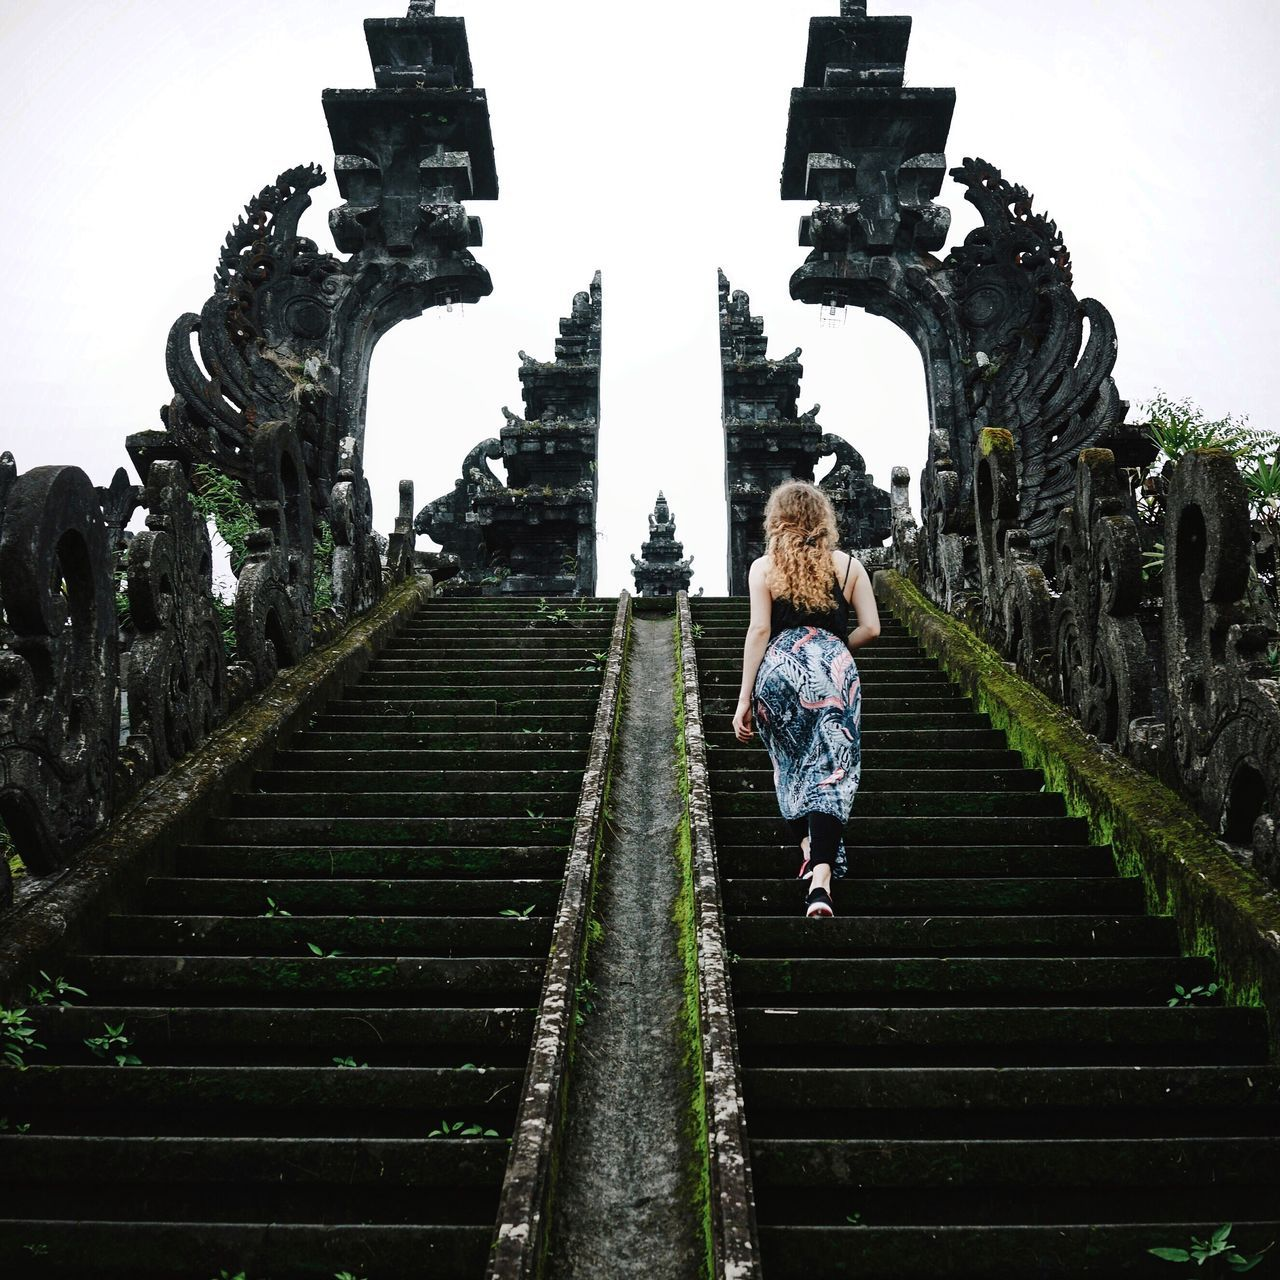 Beautiful stock photos of indonesia, railing, steps, full length, women